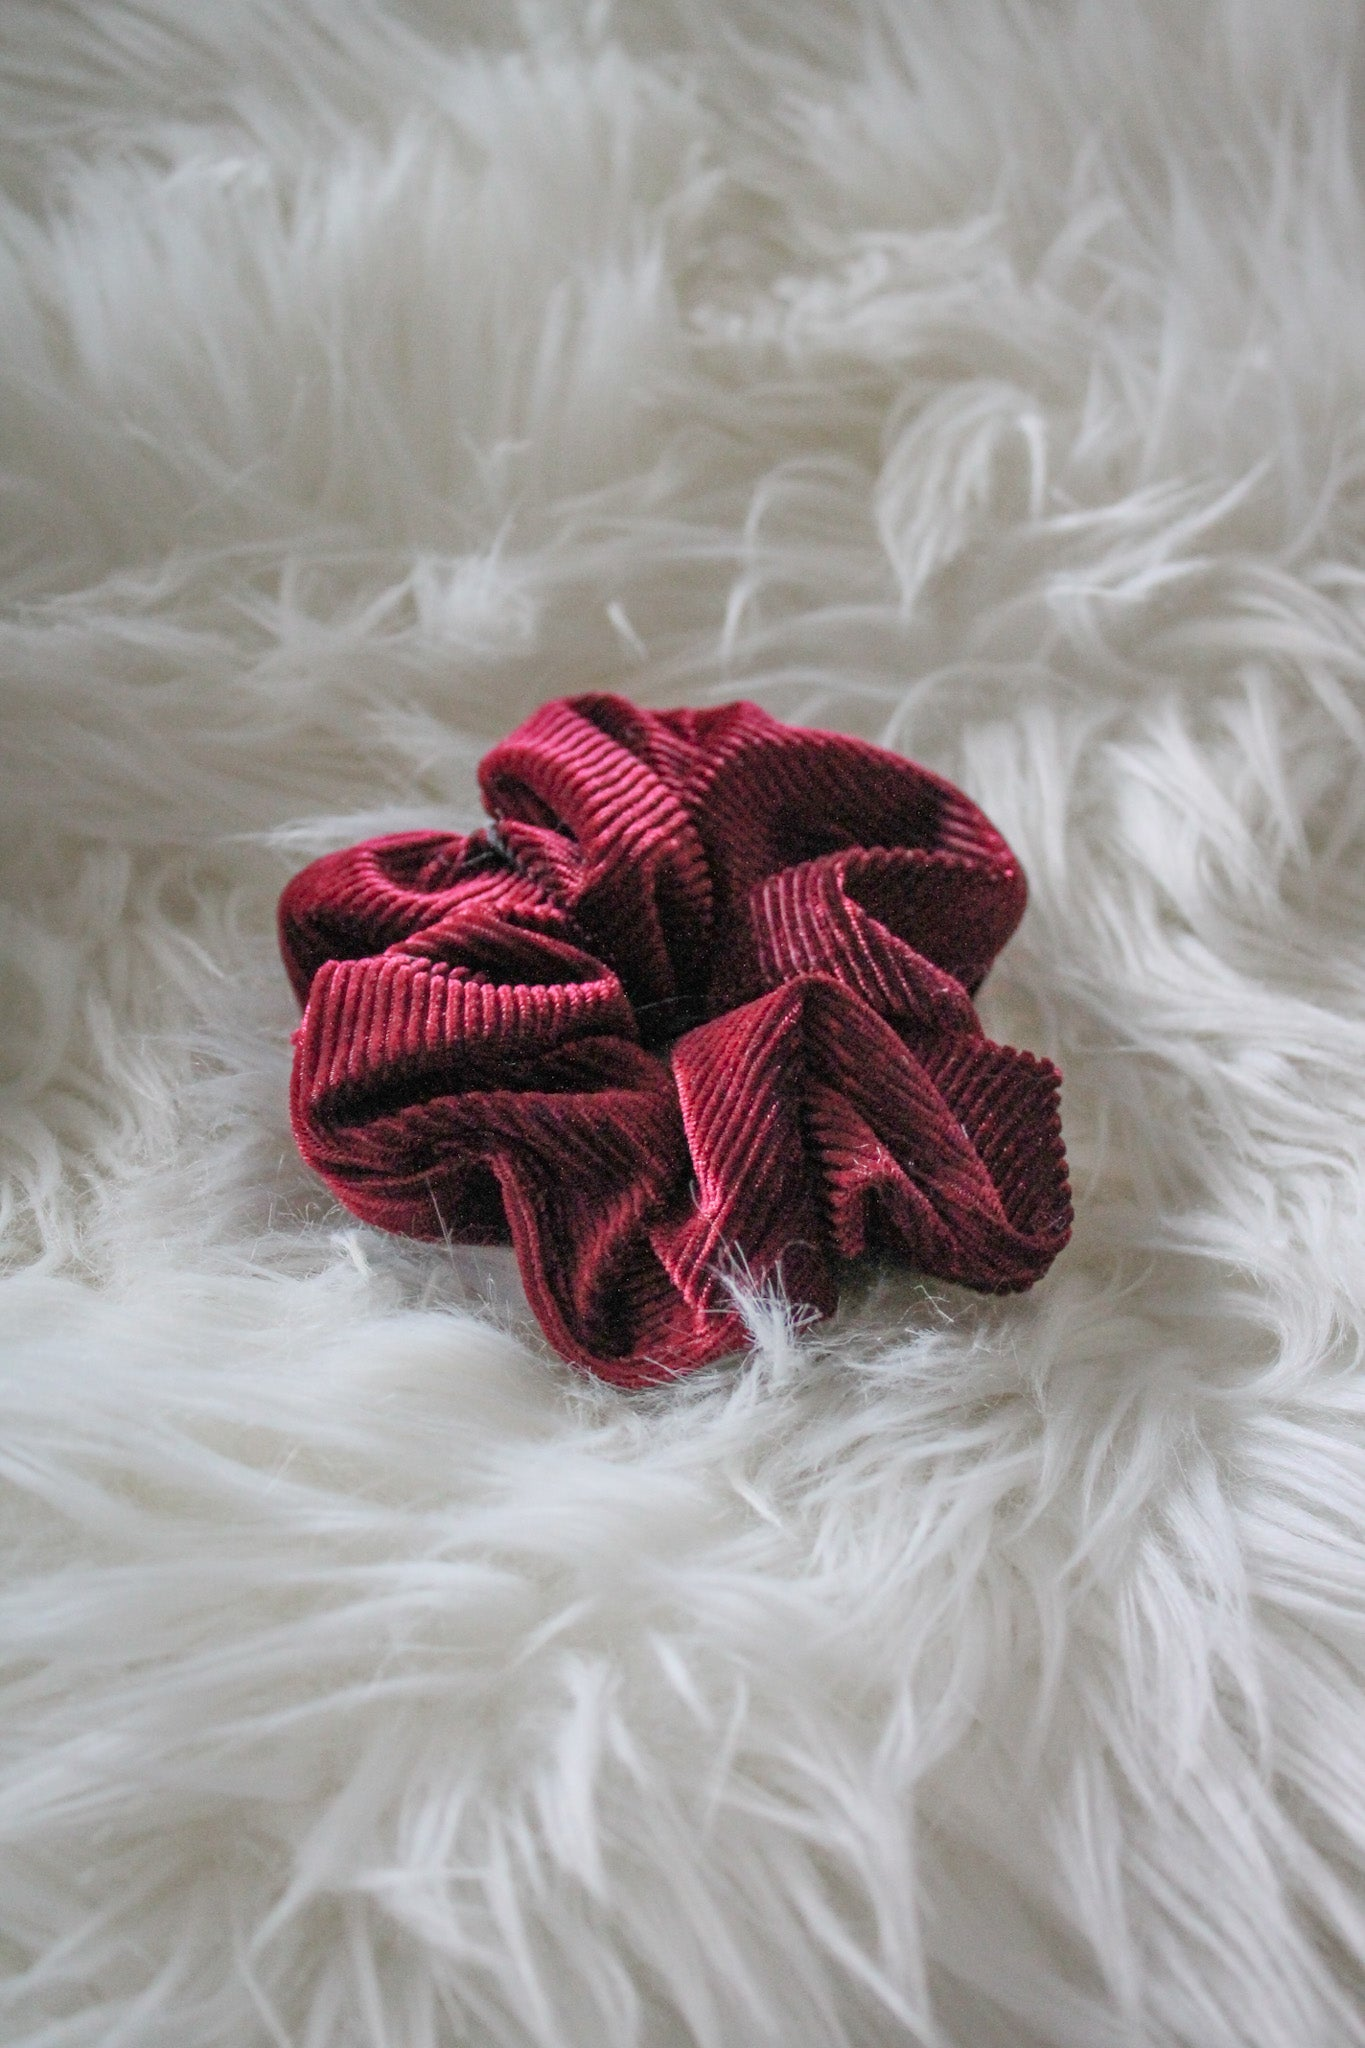 Up In the Hair Corduroy Scrunchie in Burgundy